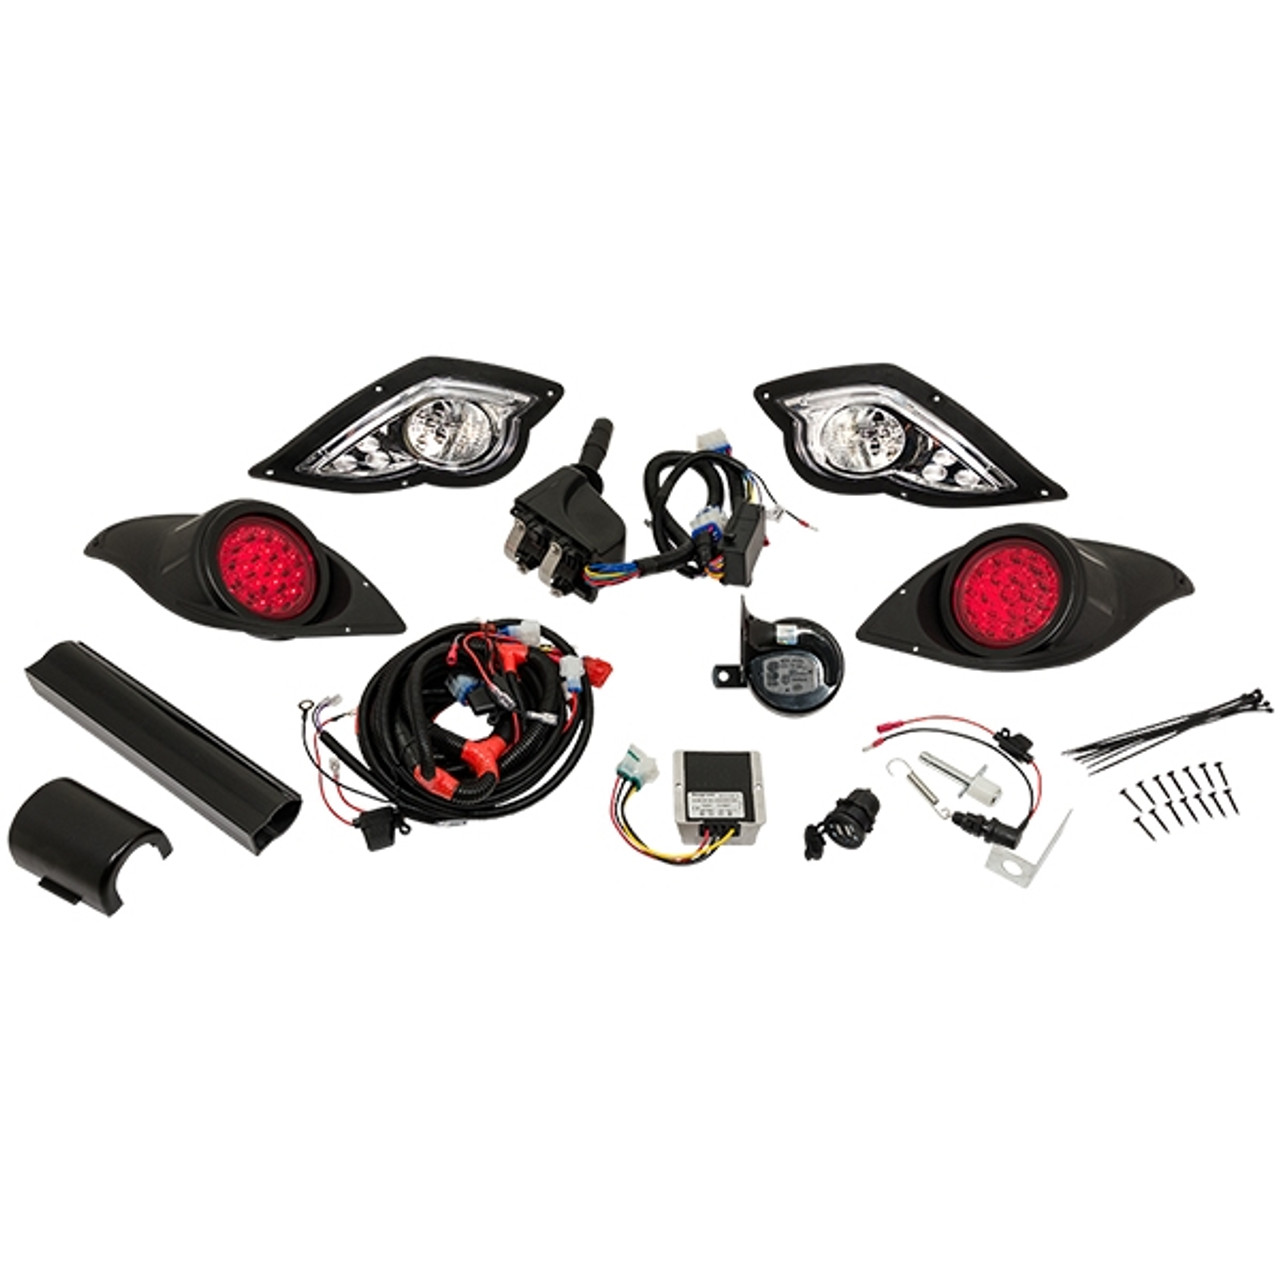 Madjax LED Ultimate Light Kit Plus - Fits Yamaha G29/Drive (2007-2016)